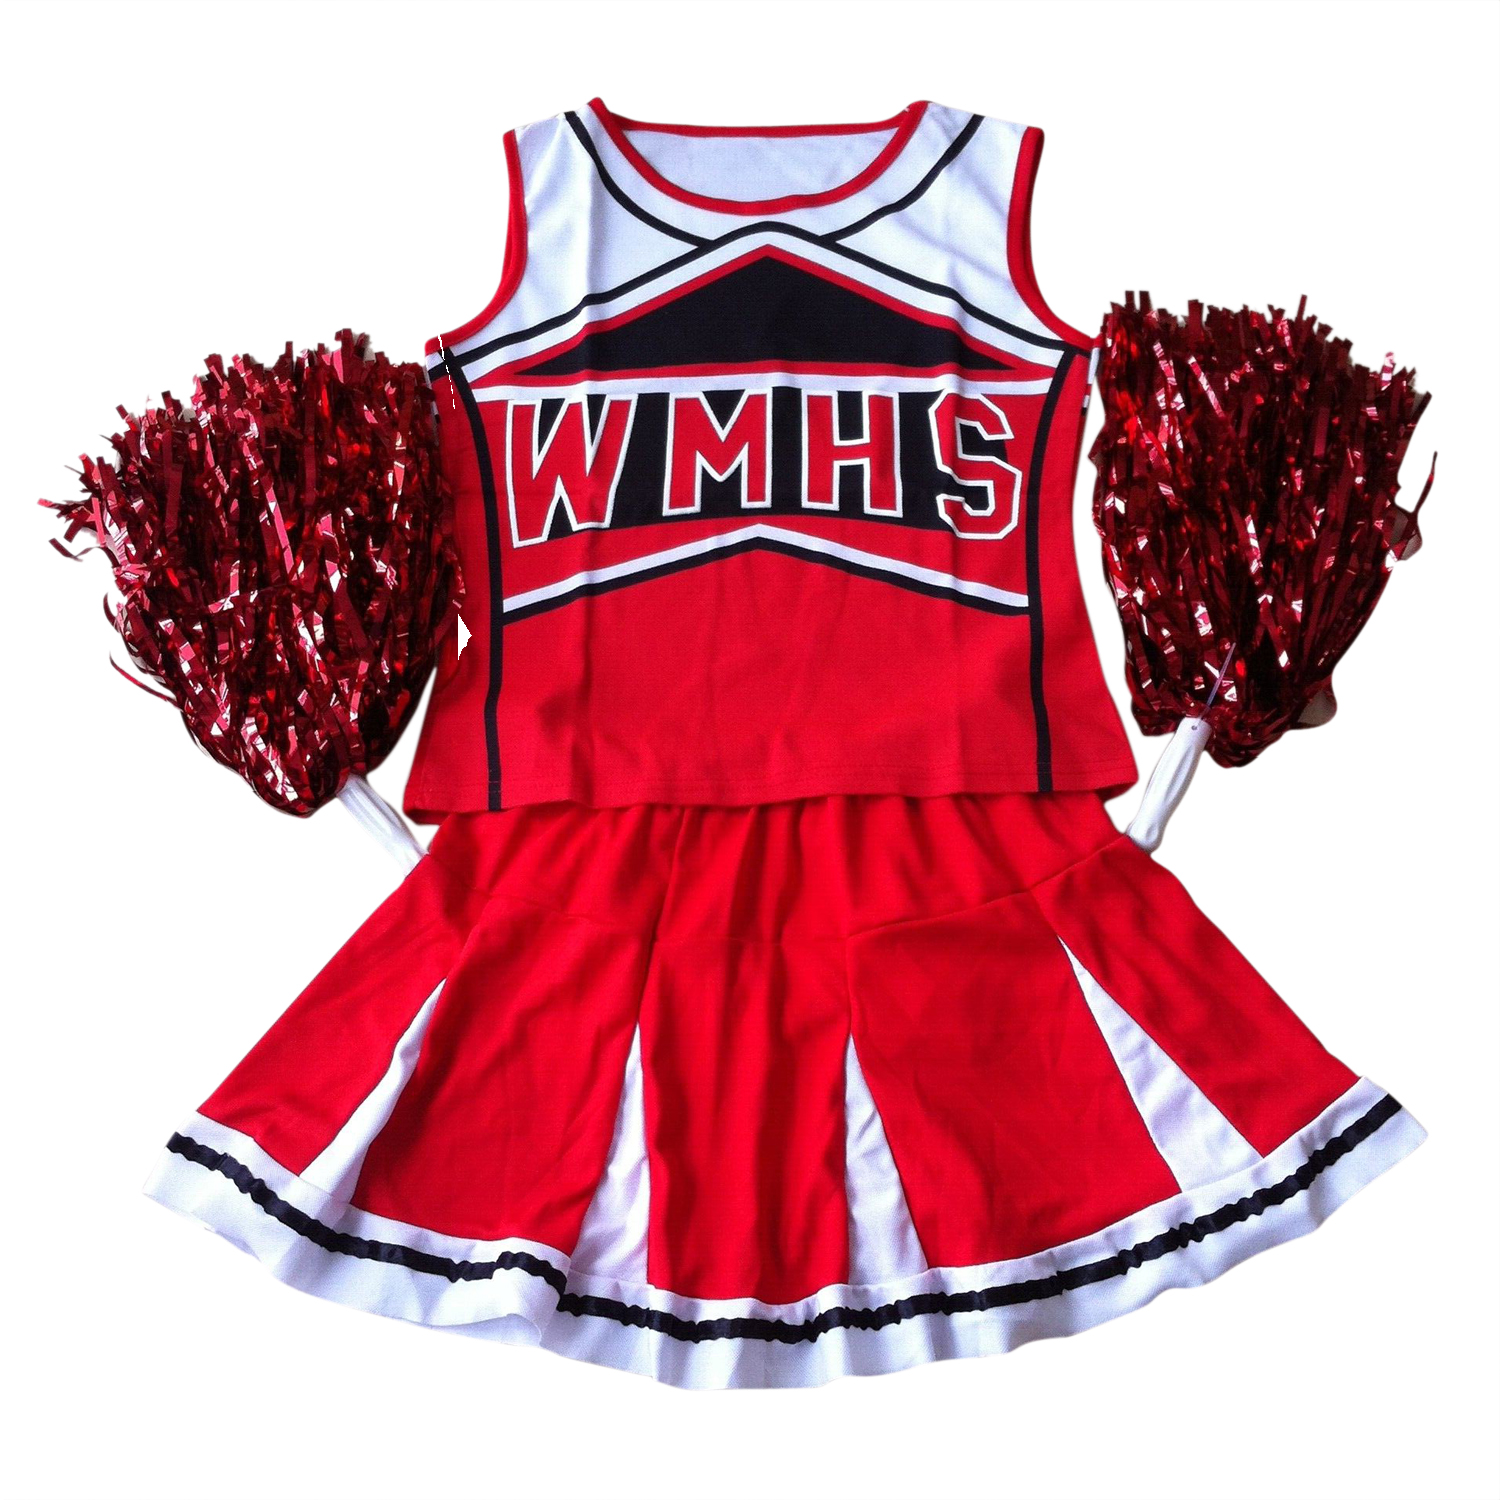 Tank top Petticoat Pom cheerleader cheer leaders M (34-36) 2 piece suit new red costume